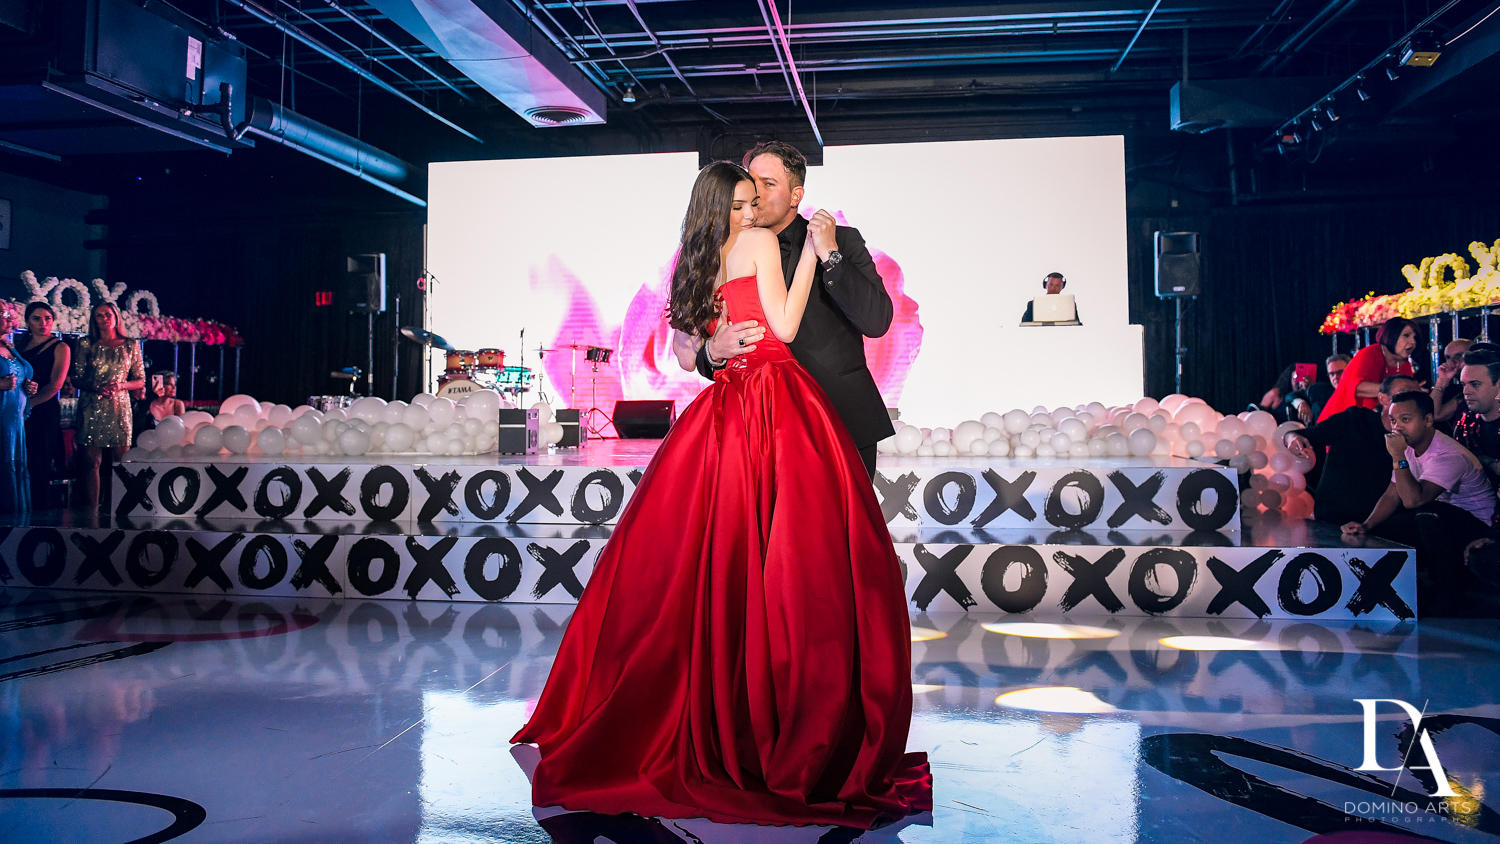 parent dance at Fashion Theme Bat Mitzvah at Gallery of Amazing Things by Domino Arts Photography